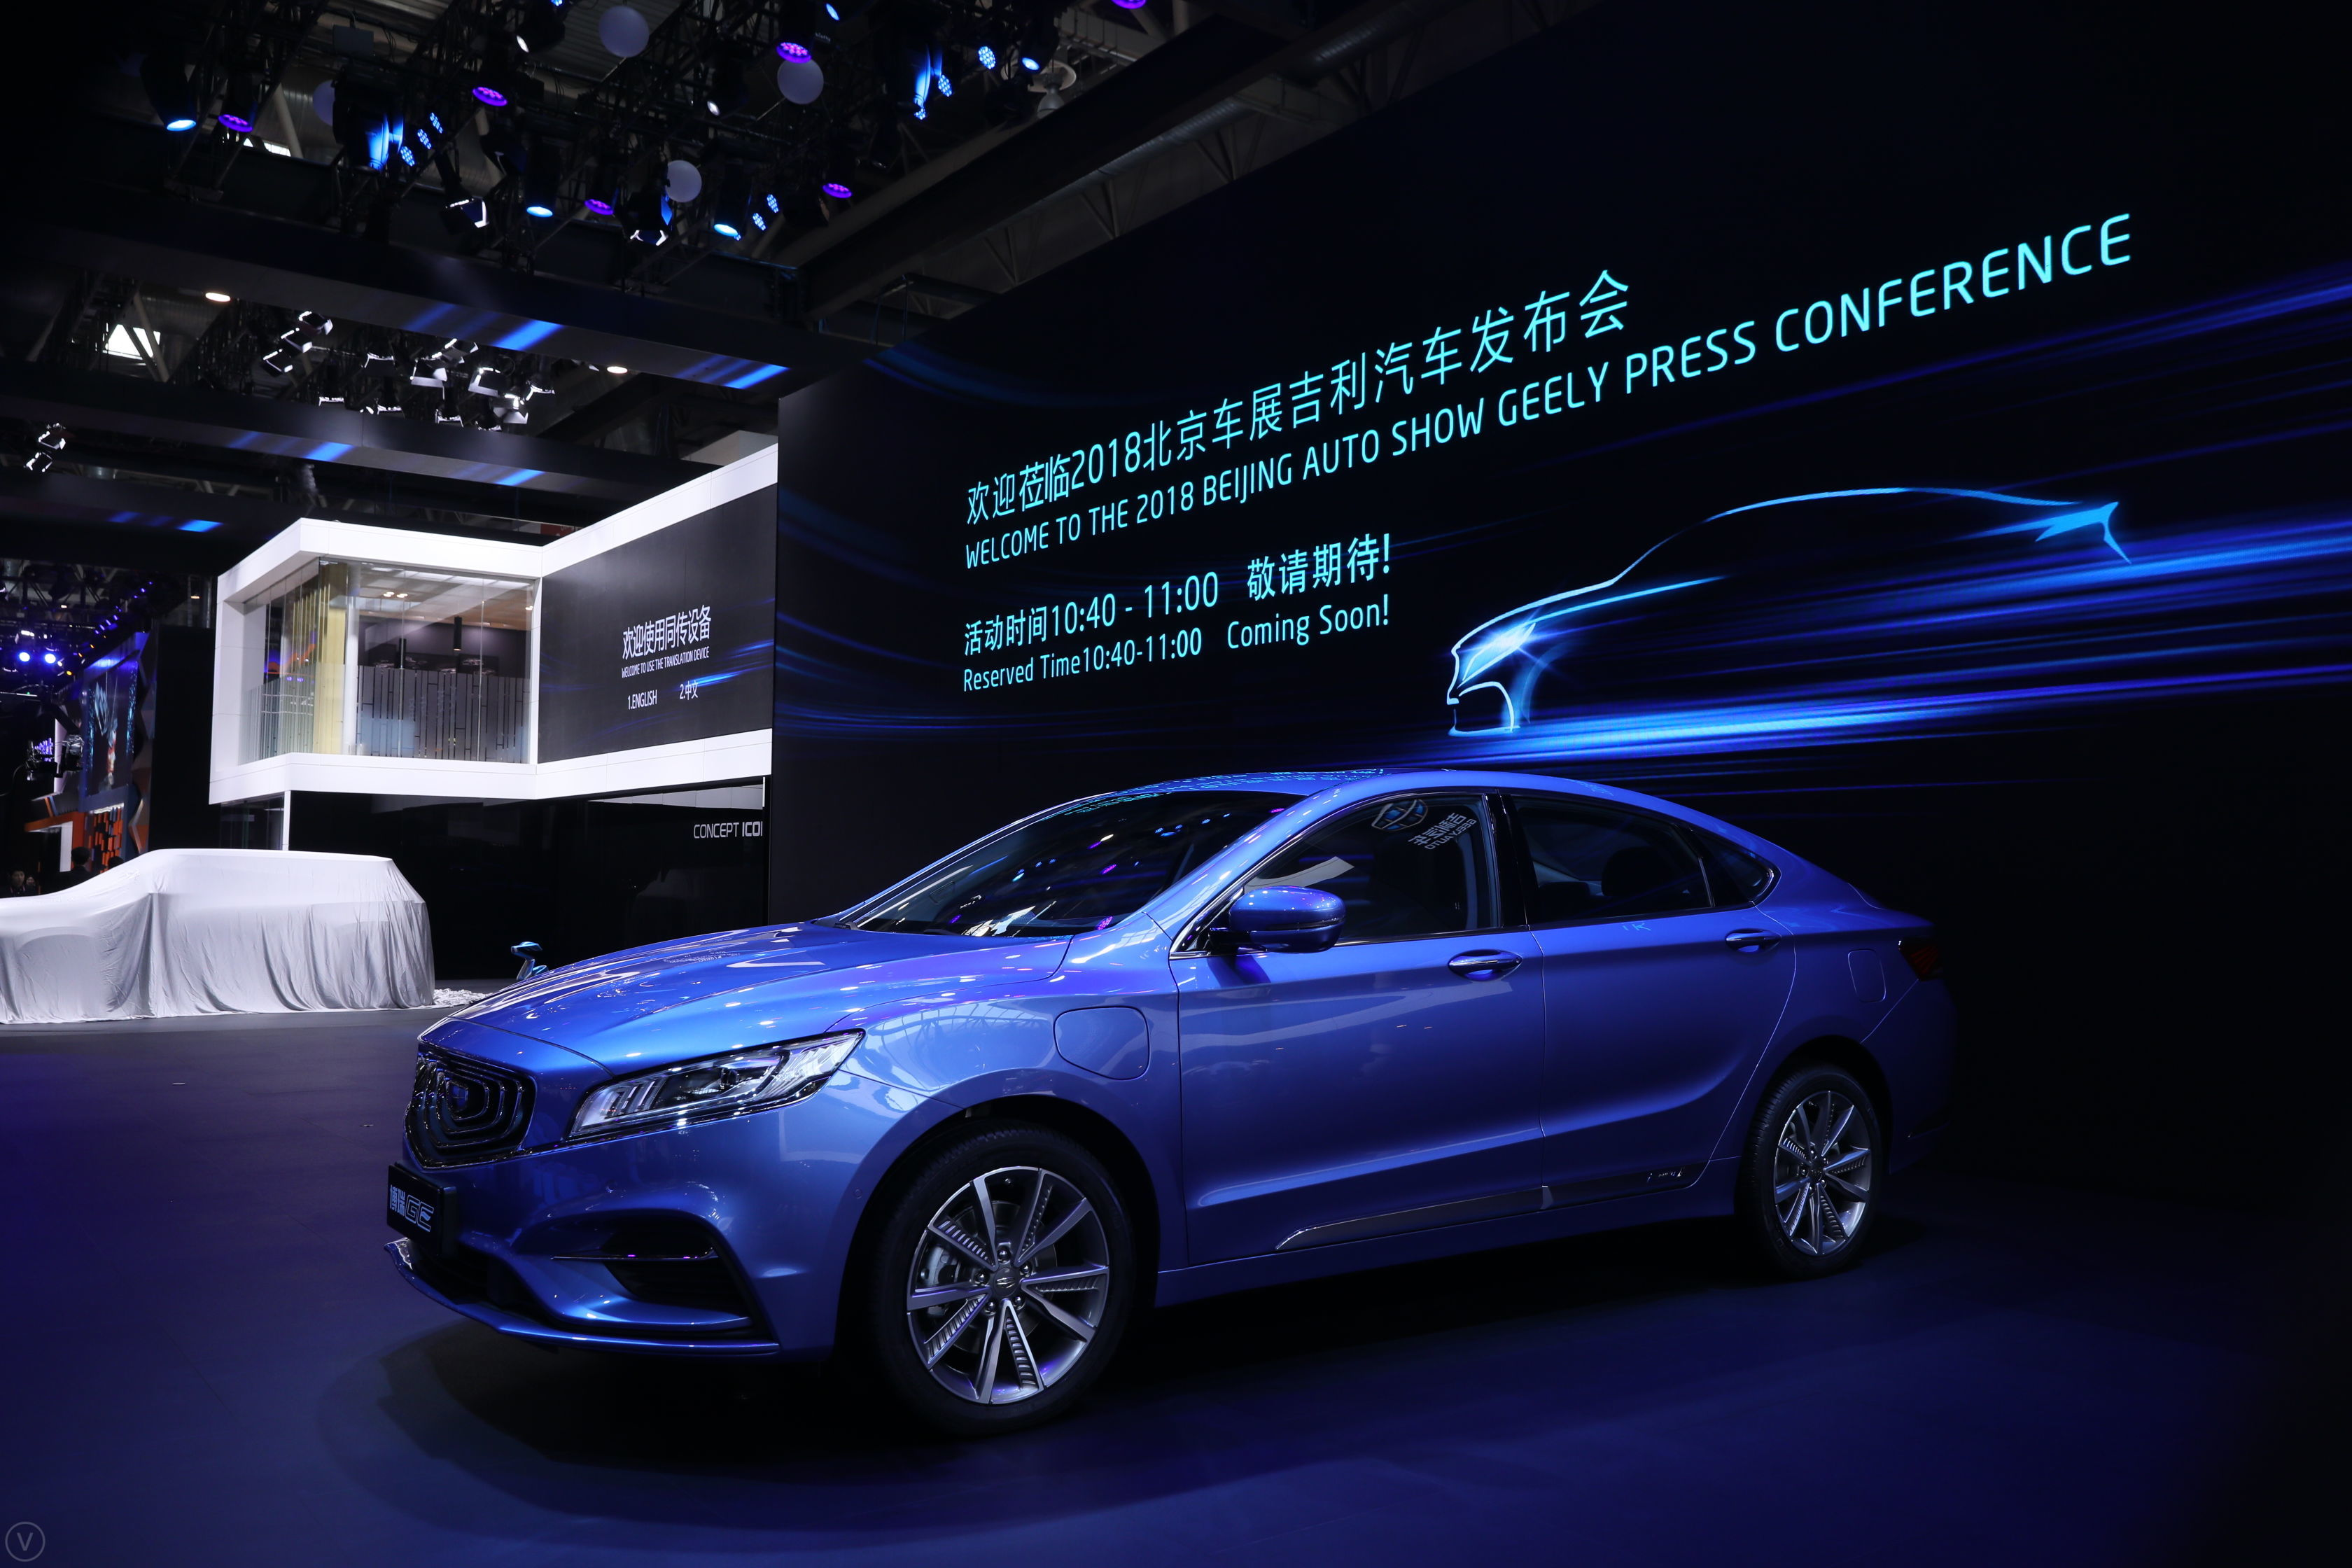 Geely S Reveals New Energy Flagship Sedan At The 2018 Beijing Auto